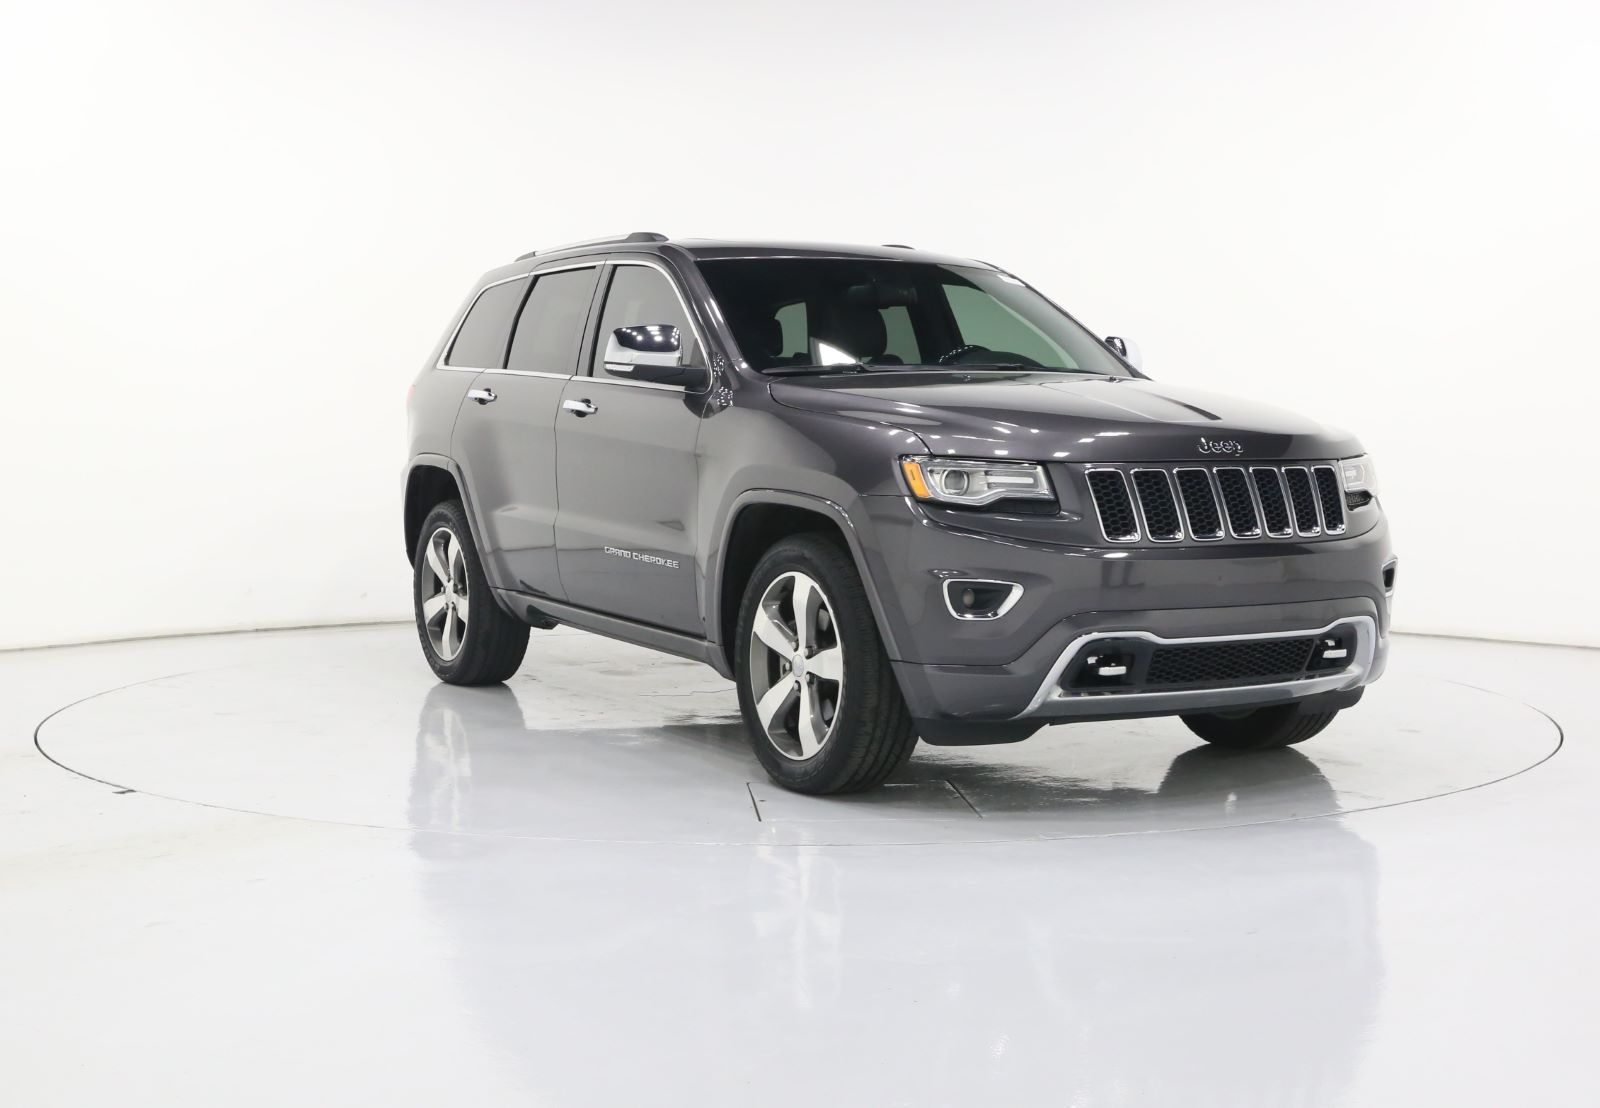 Used 2014 Jeep Grand Cherokee In Merriam Kansas Carmax Jeep Grand Jeep Grand Cherokee 2014 Jeep Grand Cherokee